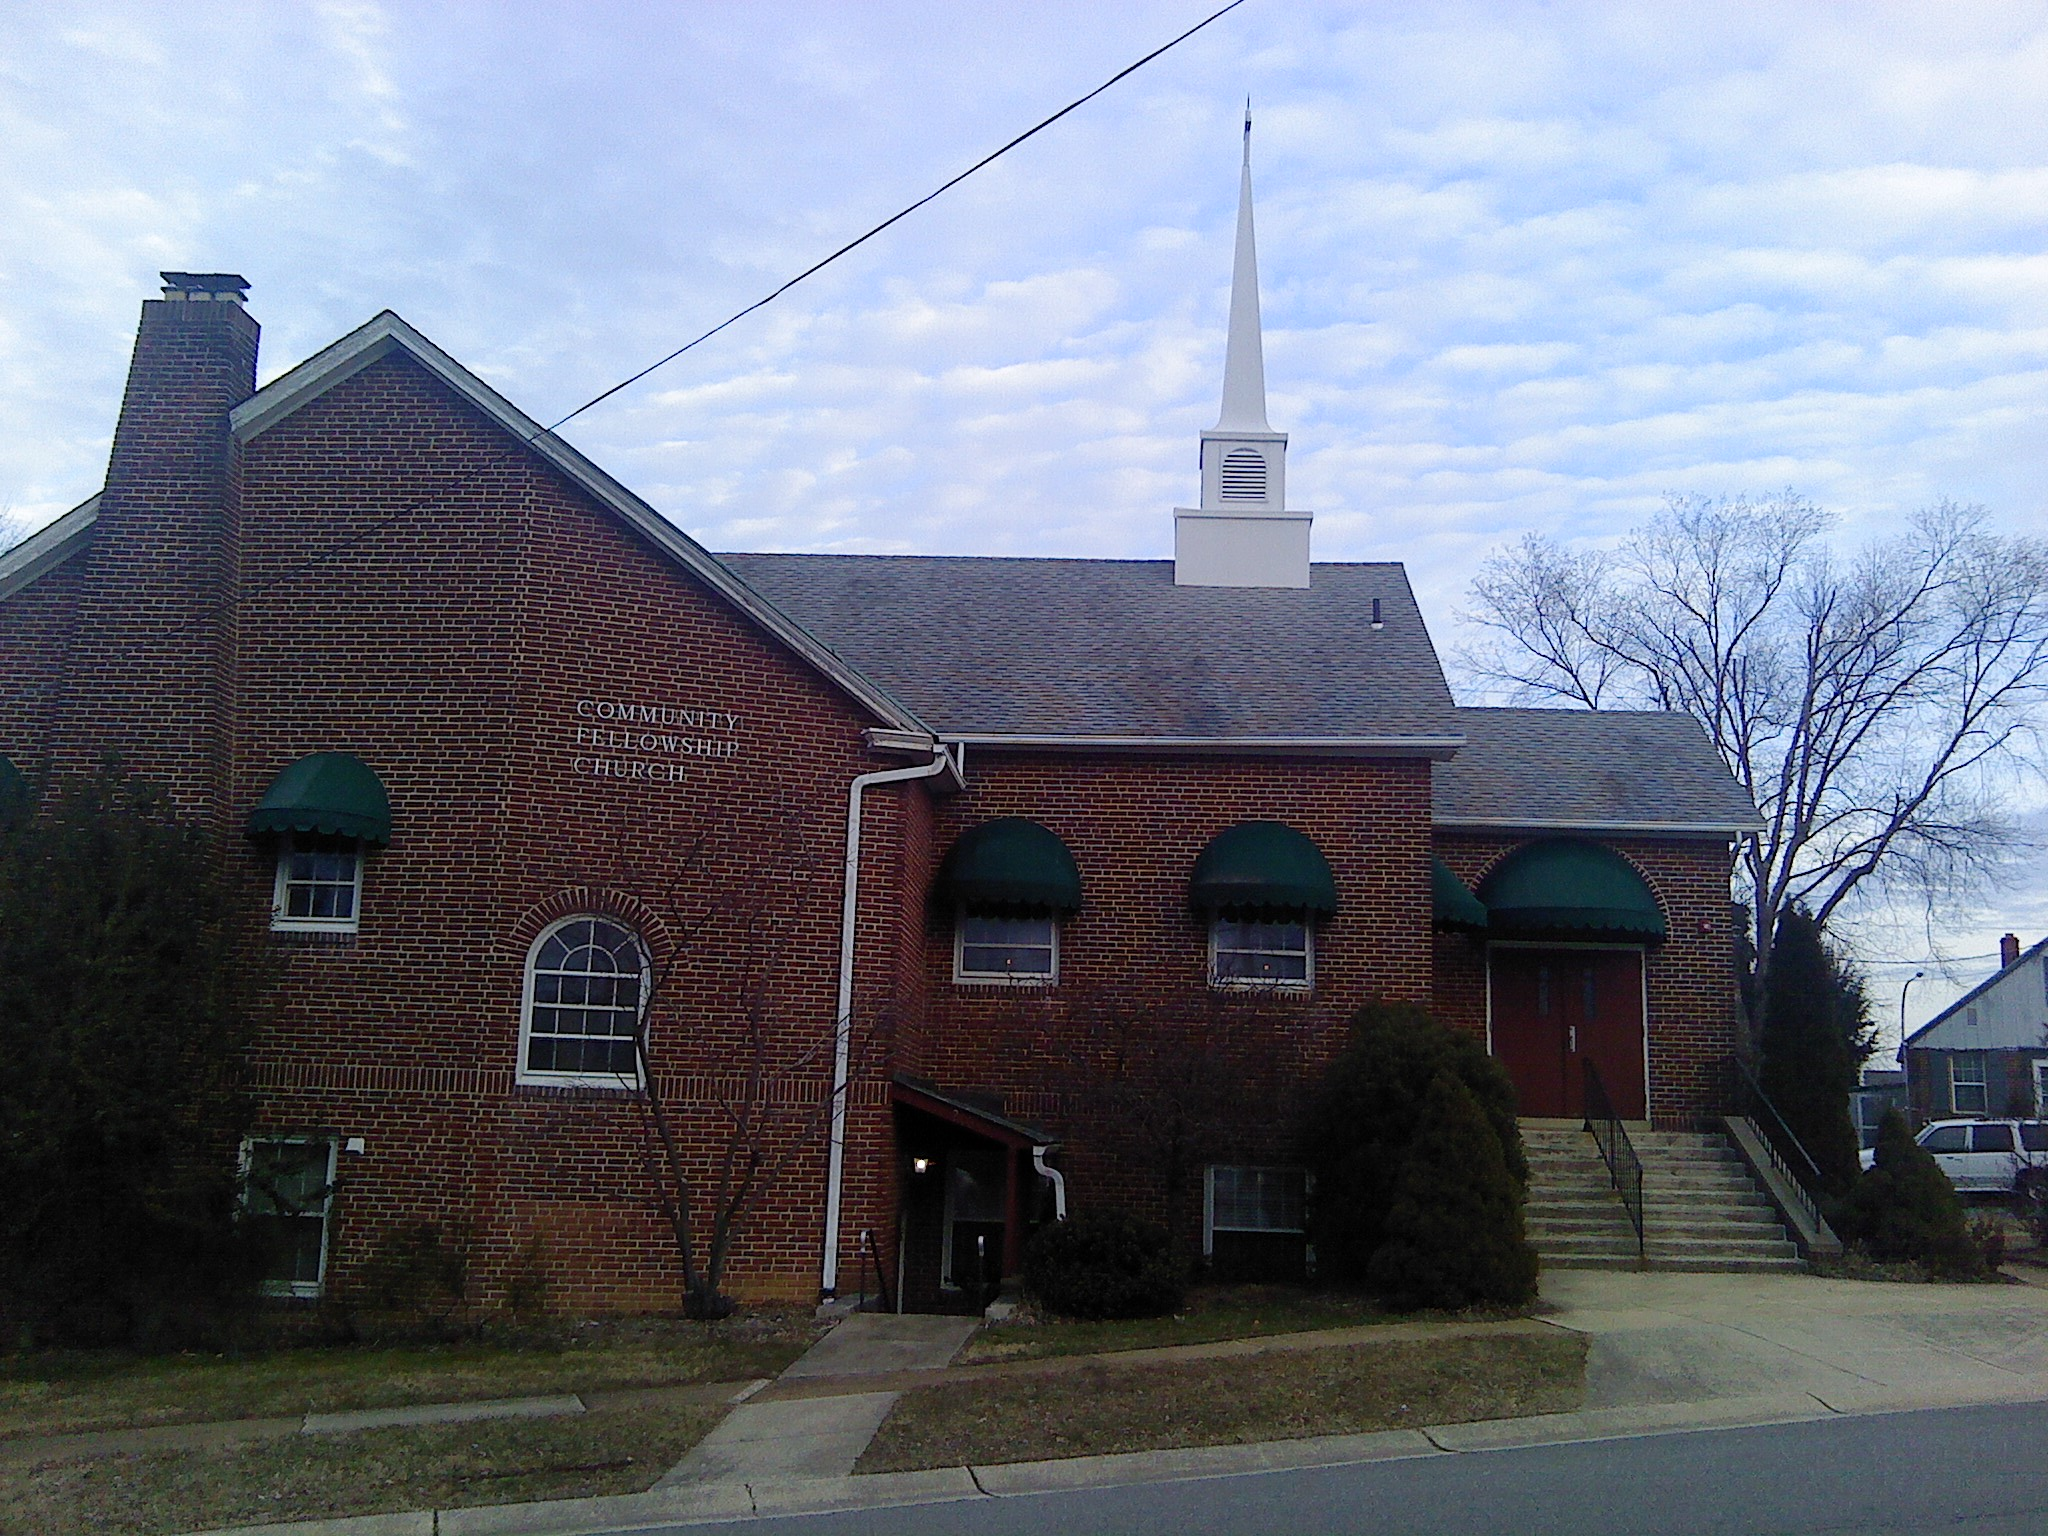 Picture 2 of CFC at 200 Armstrong Avenue